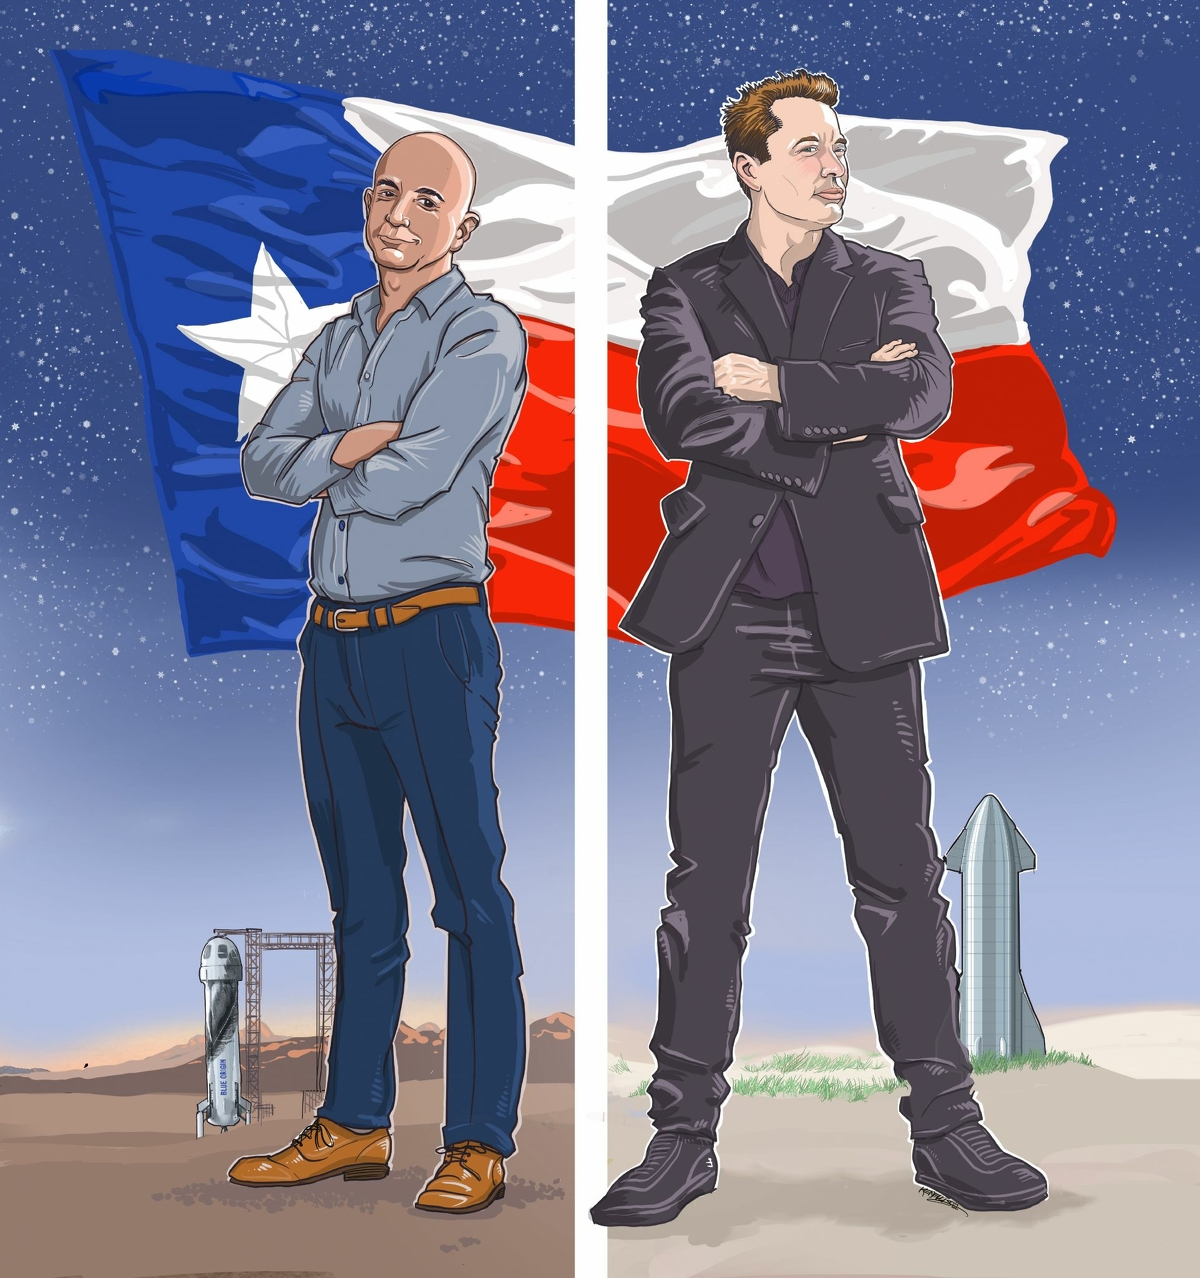 Amazon founder Jeff Bezos and Tesla founder Elon Musk have both founded commercial space enterprises, and both are launching spacecraft from Texas.